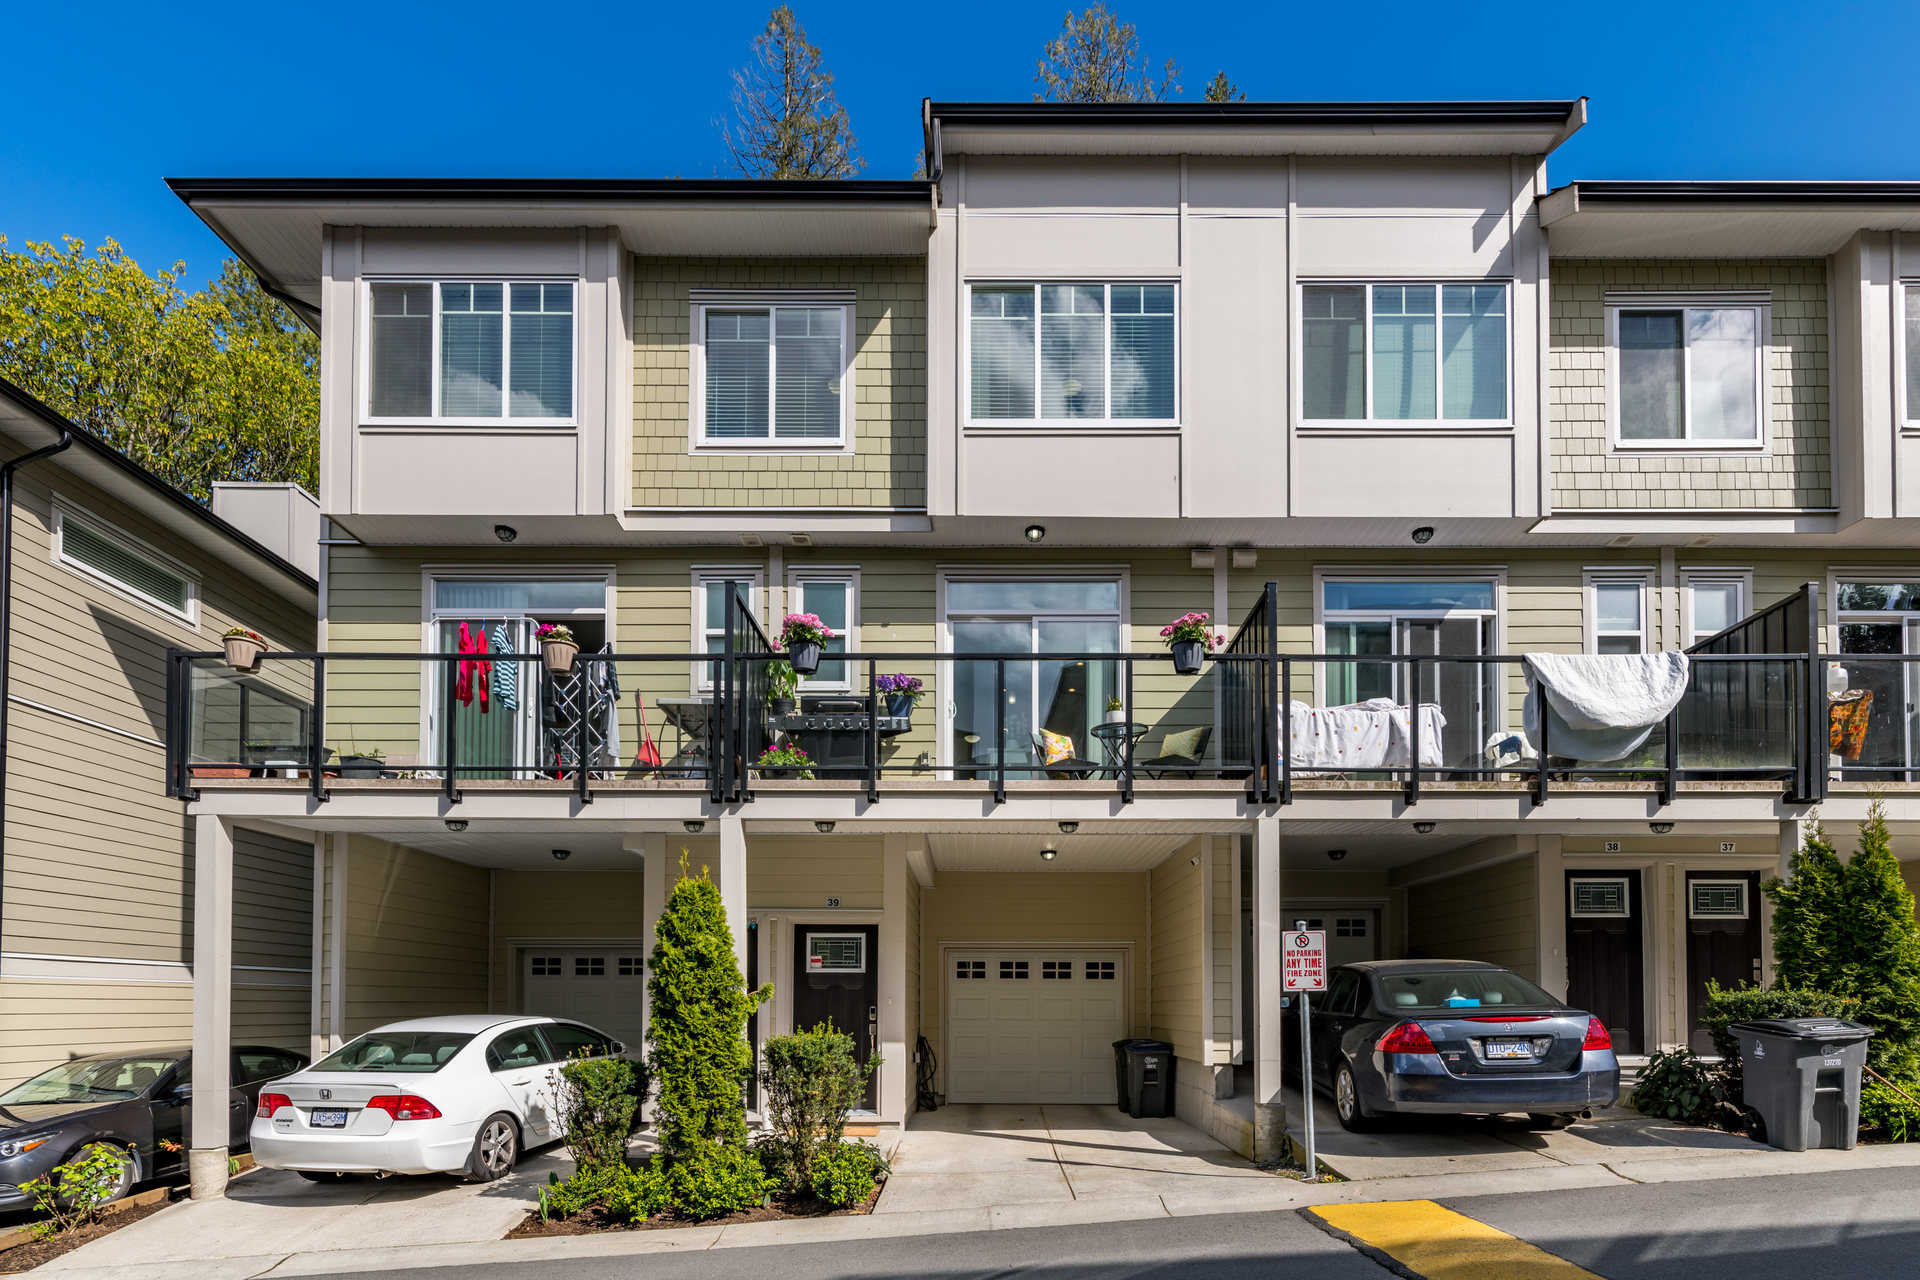 39 - 13670 62 Avenue, Panorama Ridge, Surrey 1